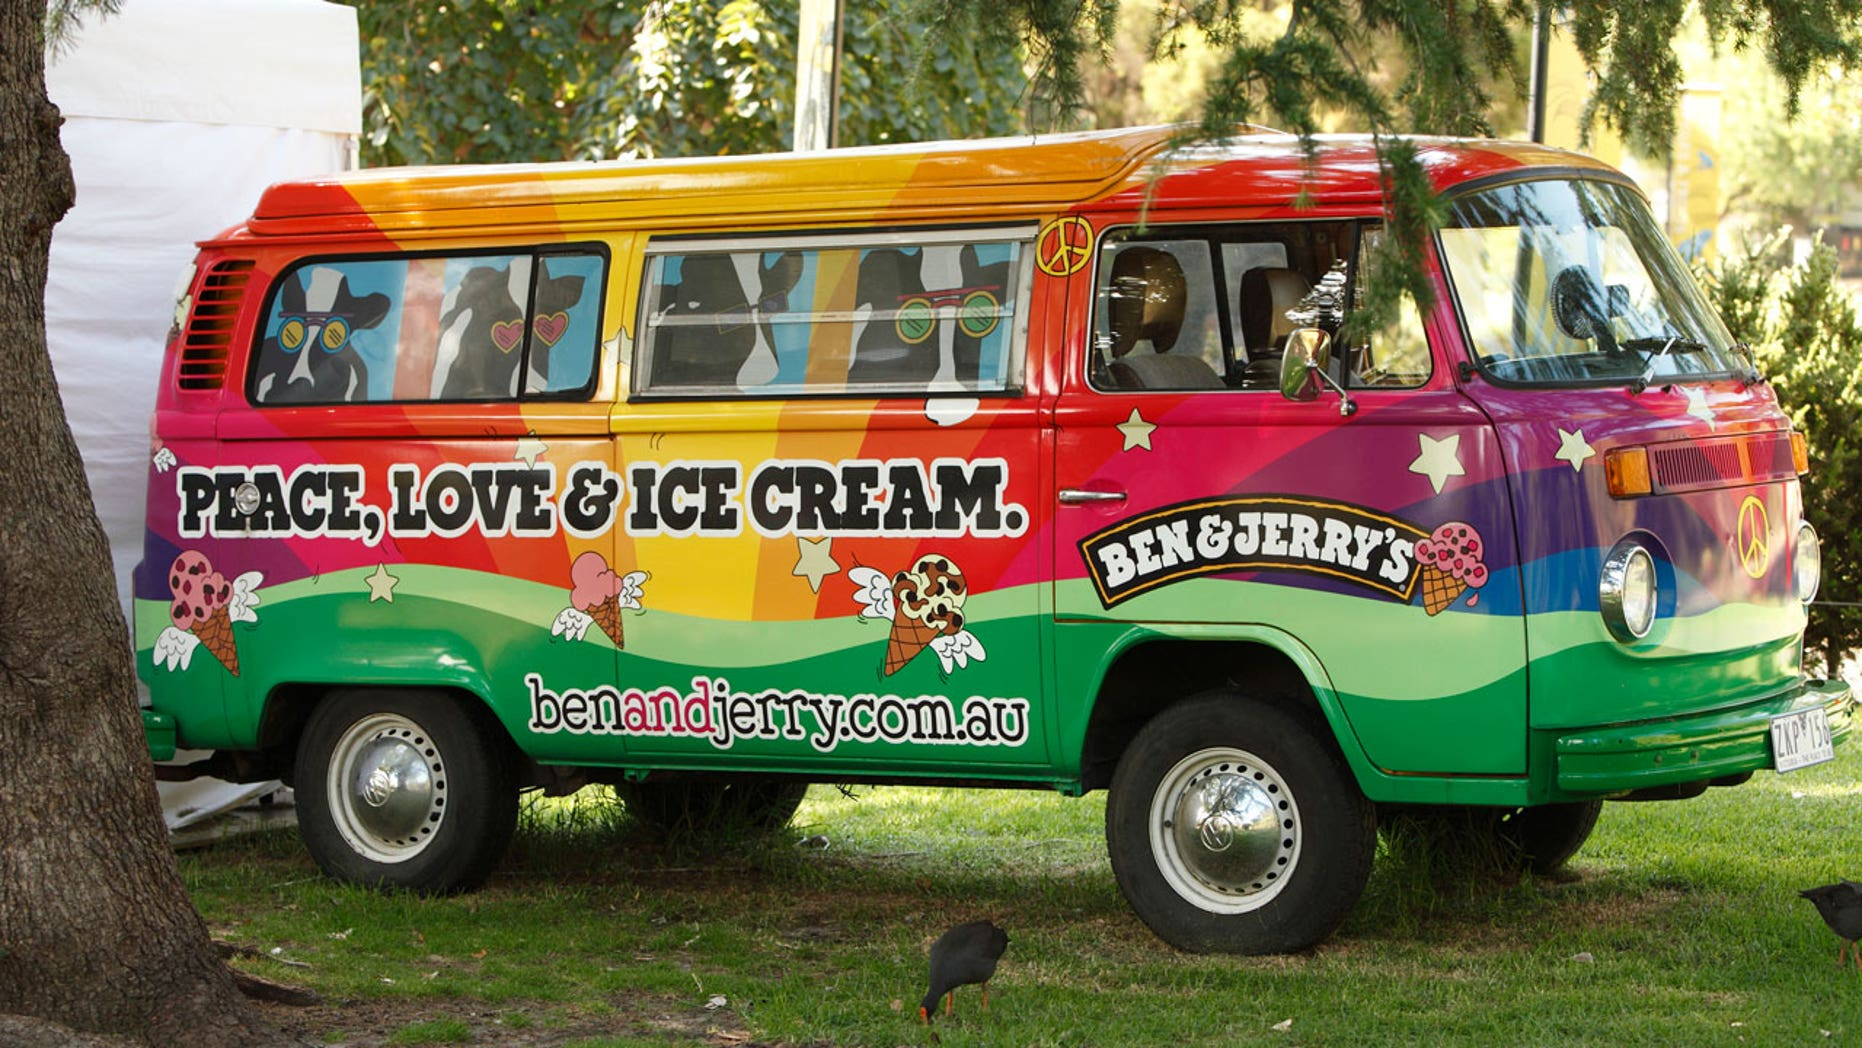 Ben & Jerry's Australia is campaigning for marriage equality in a new campaign.